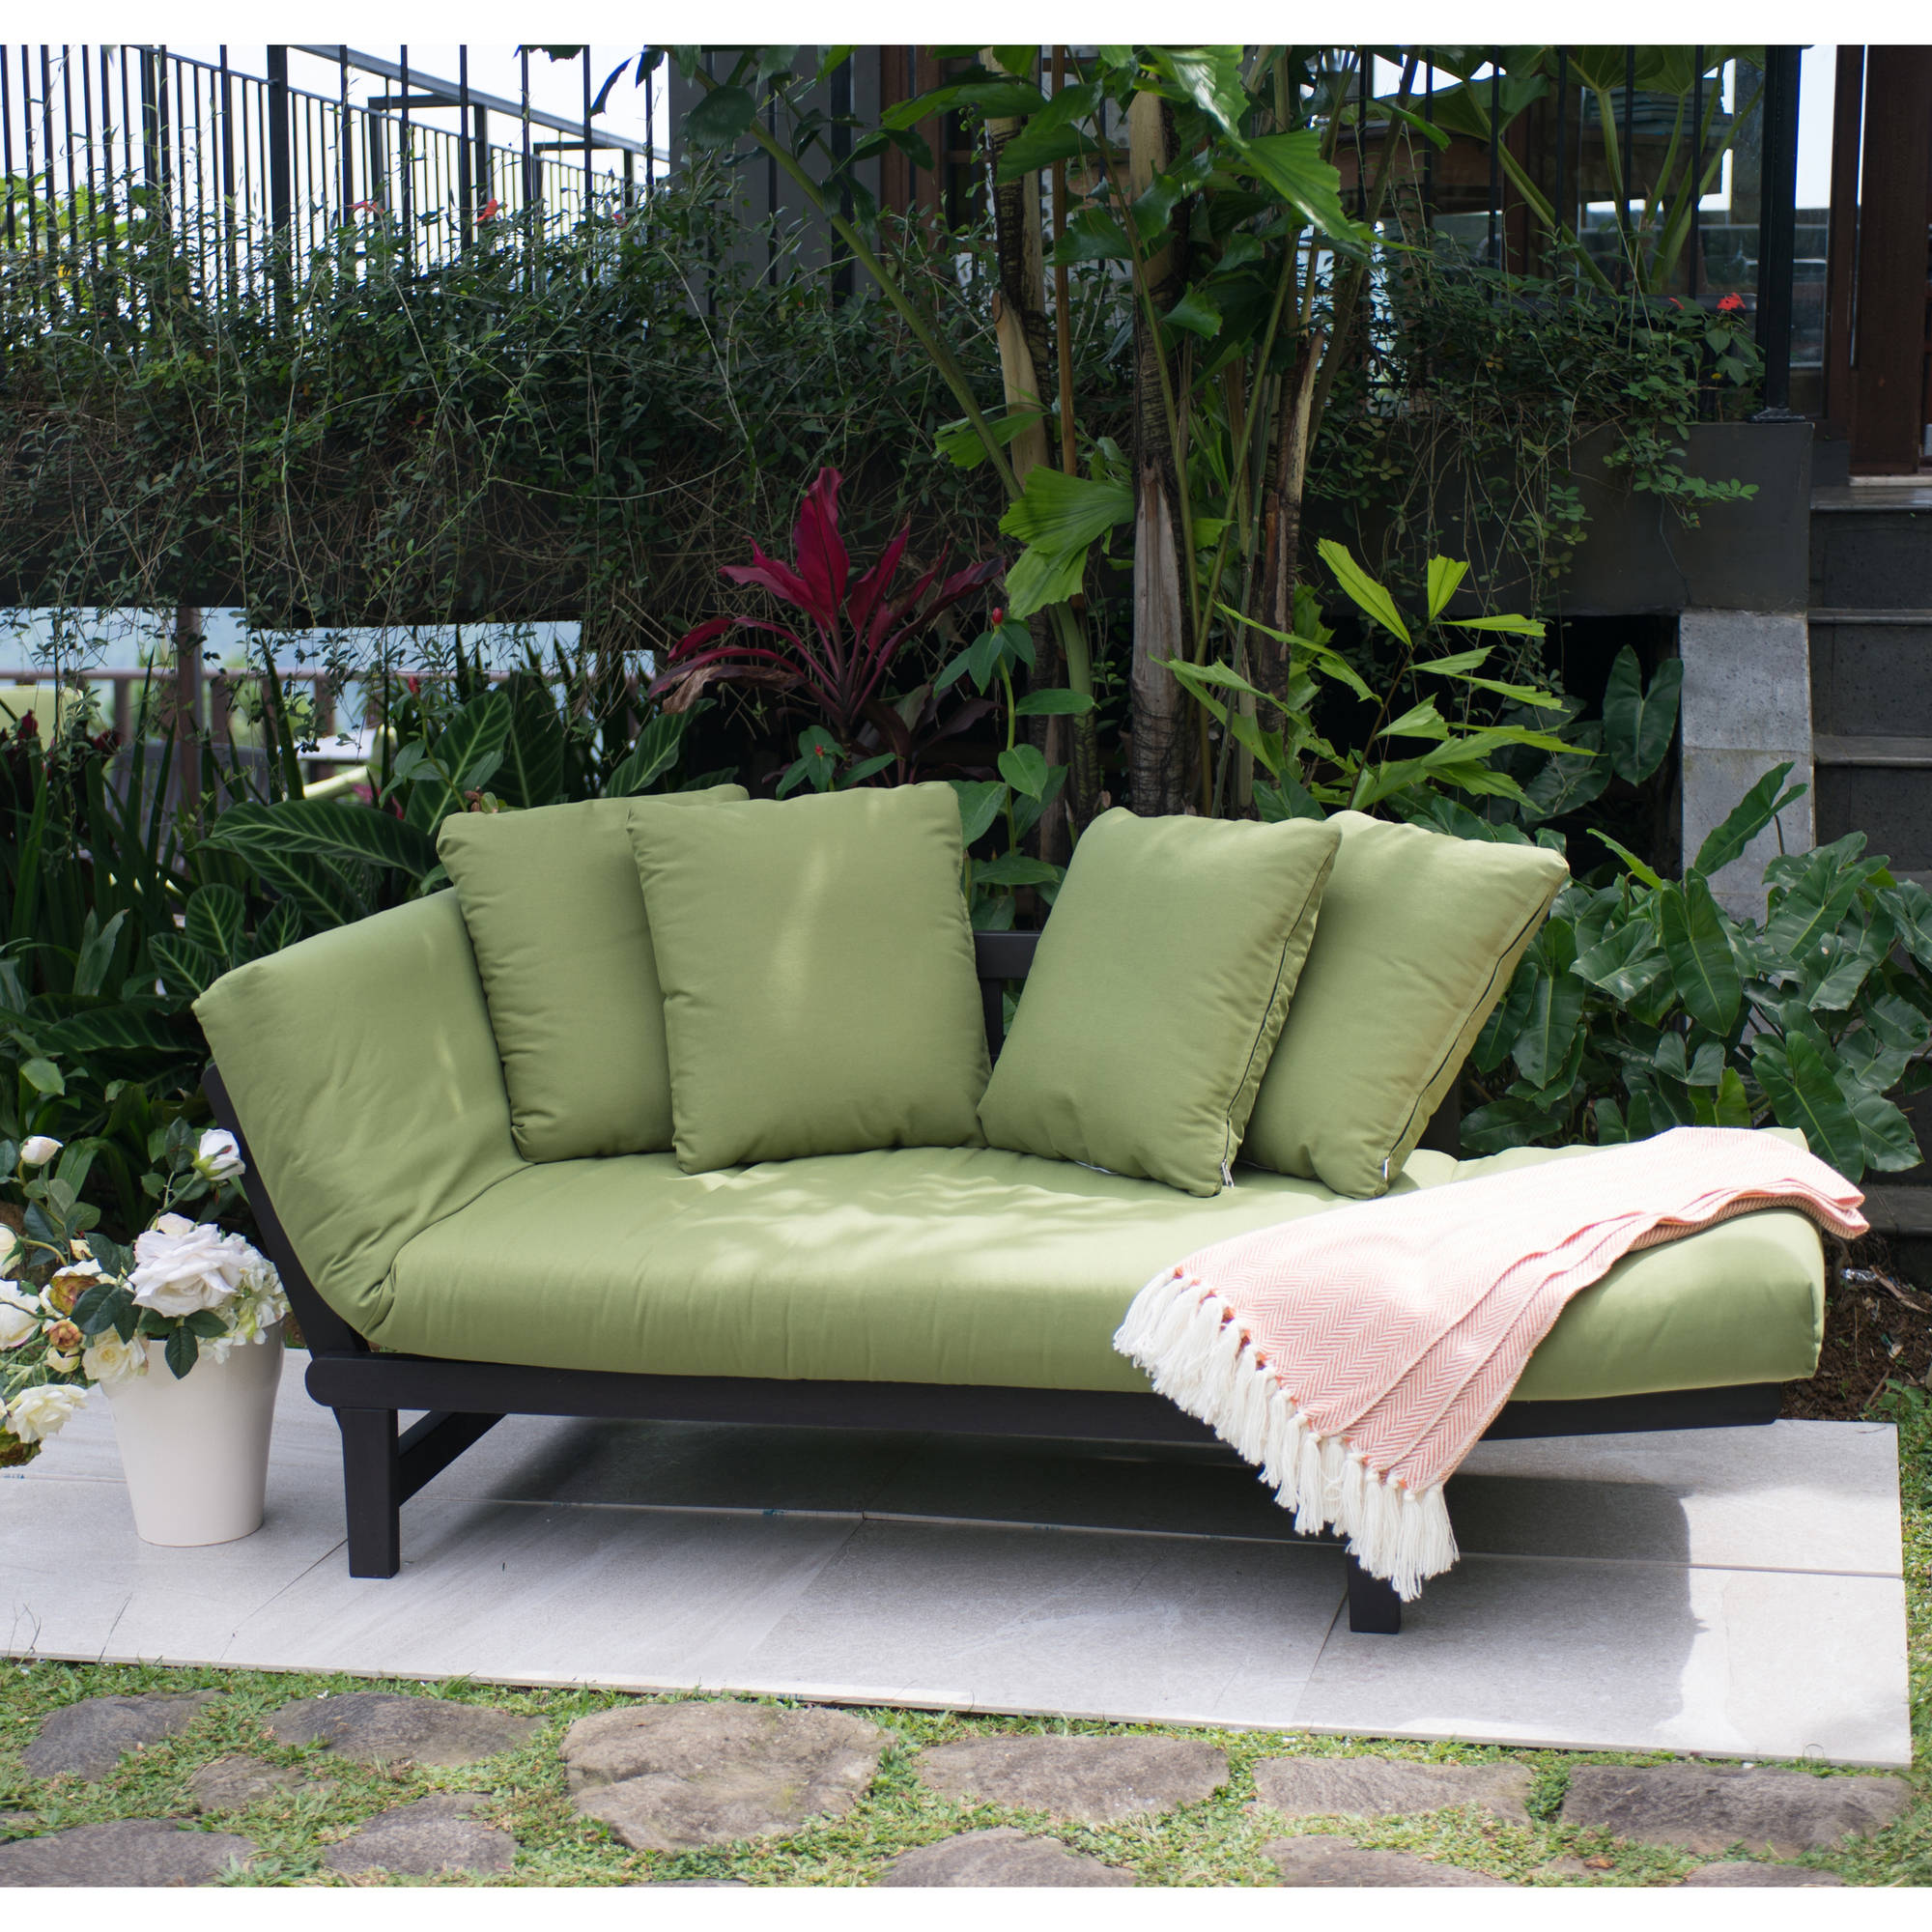 Better Homes And Gardens Delahey Outdoor Daybed With Cushions Green